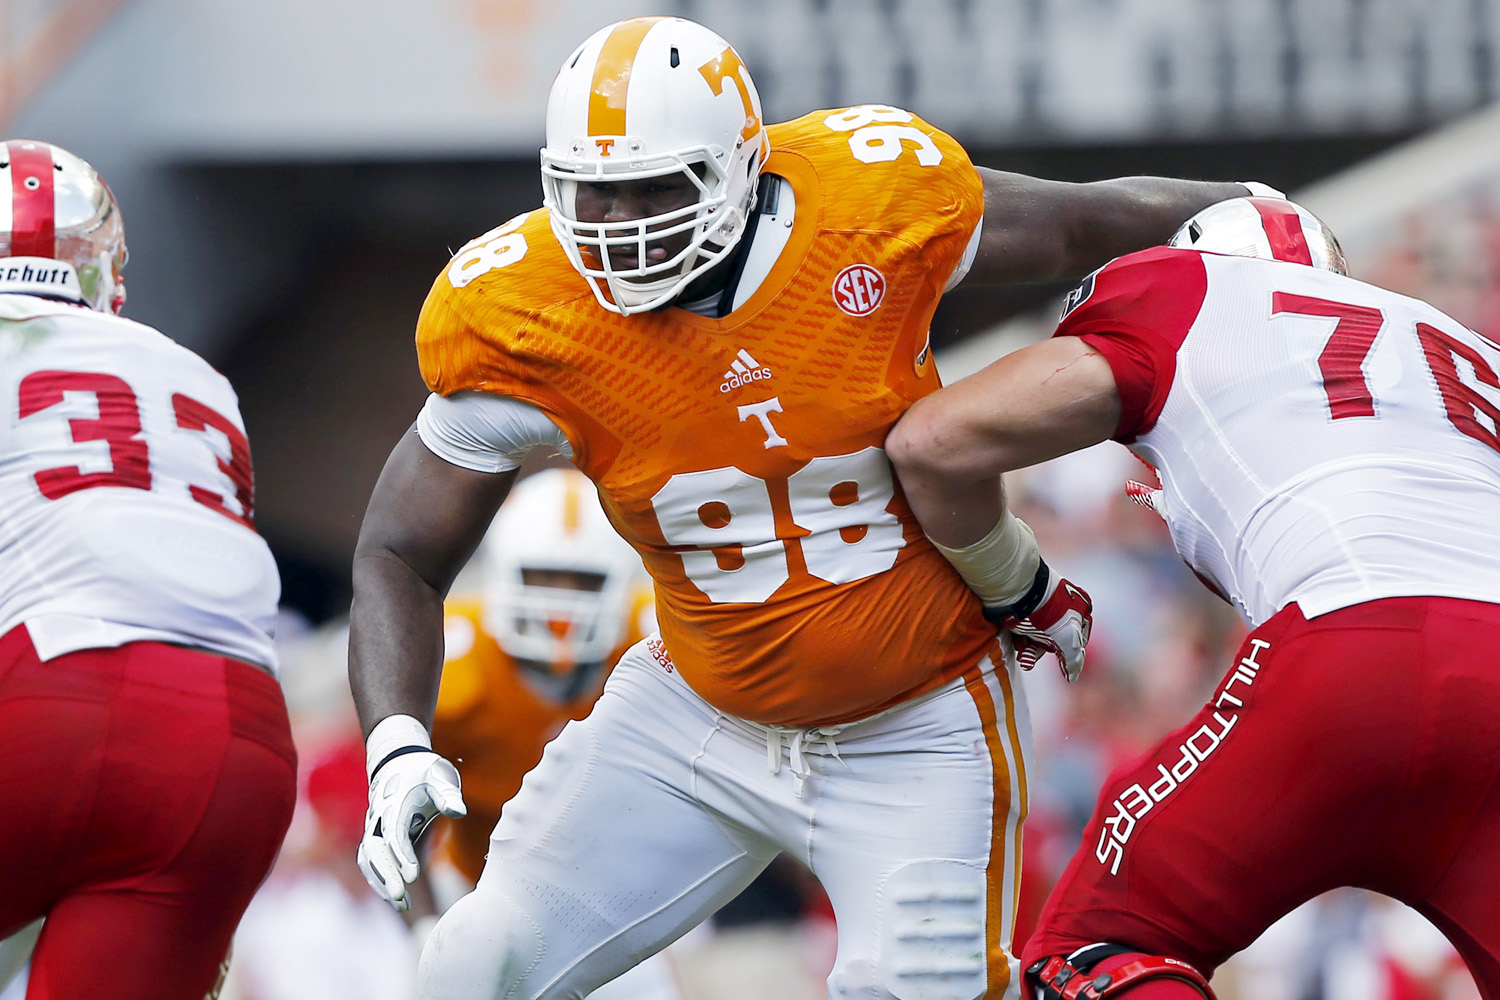 <b>6-foot-8, 351 pounds</b> <br><br> <strong>The defender:</strong> McCullers is the lone defensive player in our look around some of the SEC's biggest men. Rated the No. 4 senior NFL draft prospect in the nation by NFL Media senior analyst Gil Brandt, the nose guard came to Vol Country from Georgia Military College at nearly 400 pounds. He's since trimmed down, but remains the SEC's biggest defensive player.